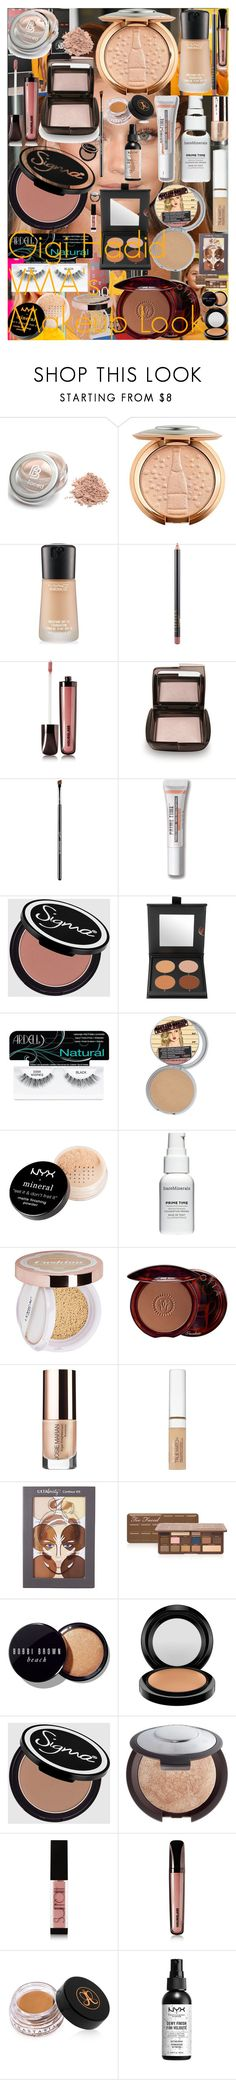 """Gigi Hadid VMA's Makeup Look"" by oroartye-1 on Polyvore featuring beauty, MAC Cosmetics, Hourglass Cosmetics, Sigma, Bare Escentuals, Cover FX, Ardell, NYX, Lumi and Guerlain"